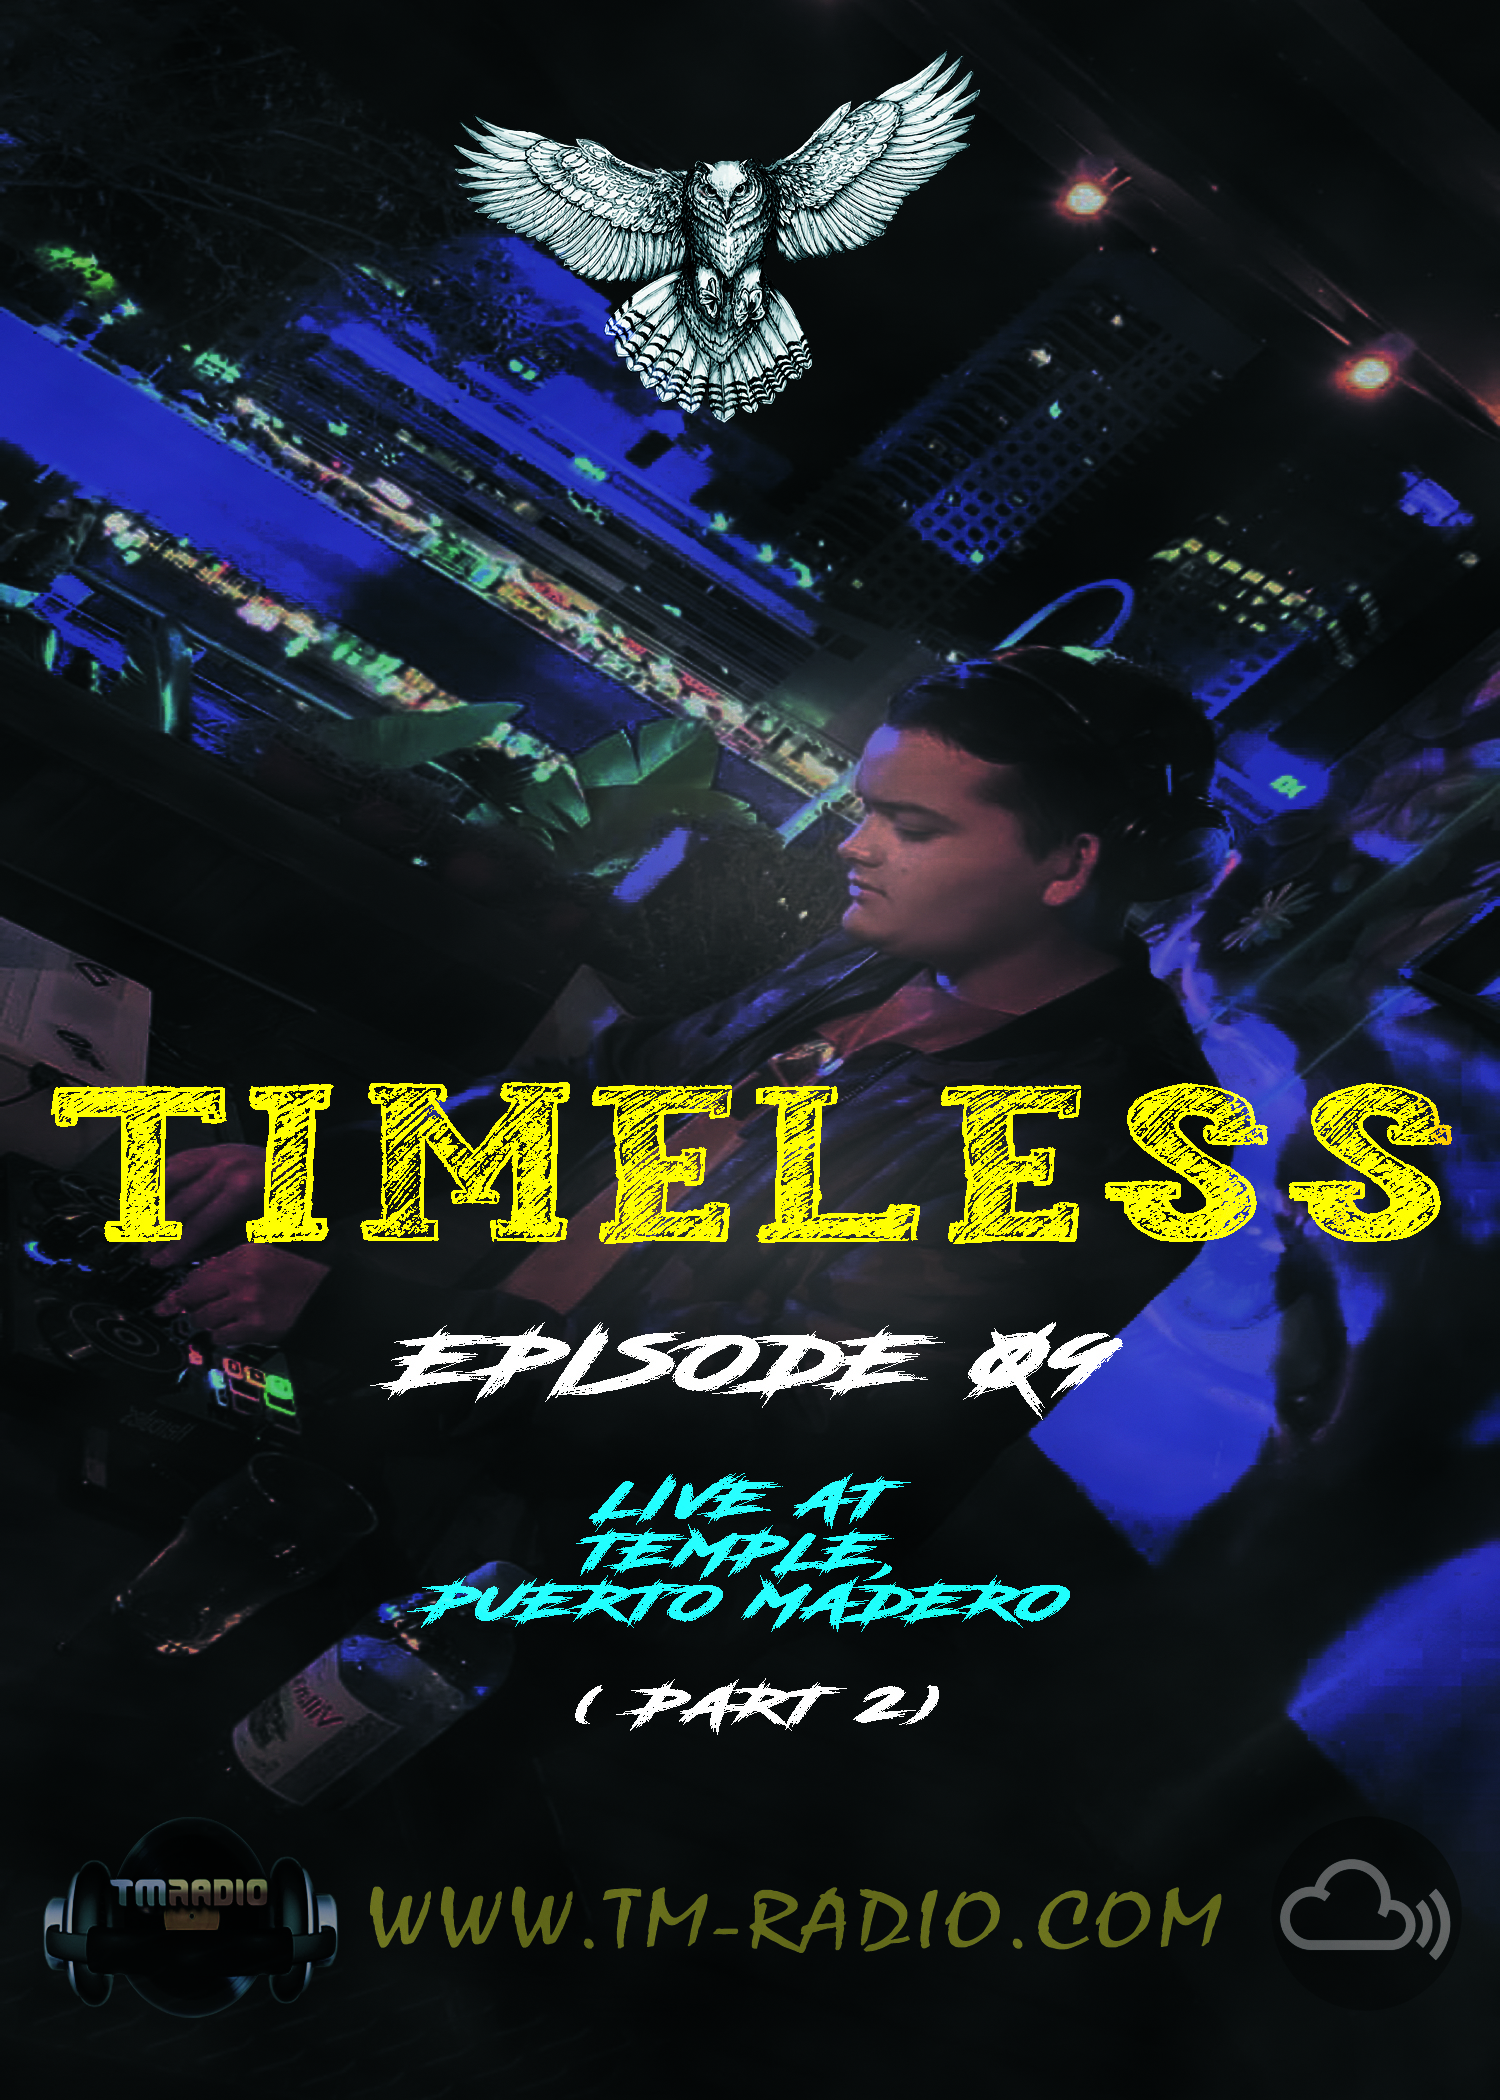 Cris Rosales - Timeless Radioshow Ep. 09 - Live @ Temple, Puerto Madero (Part 2) - 03-08-2021 (from August 3rd)